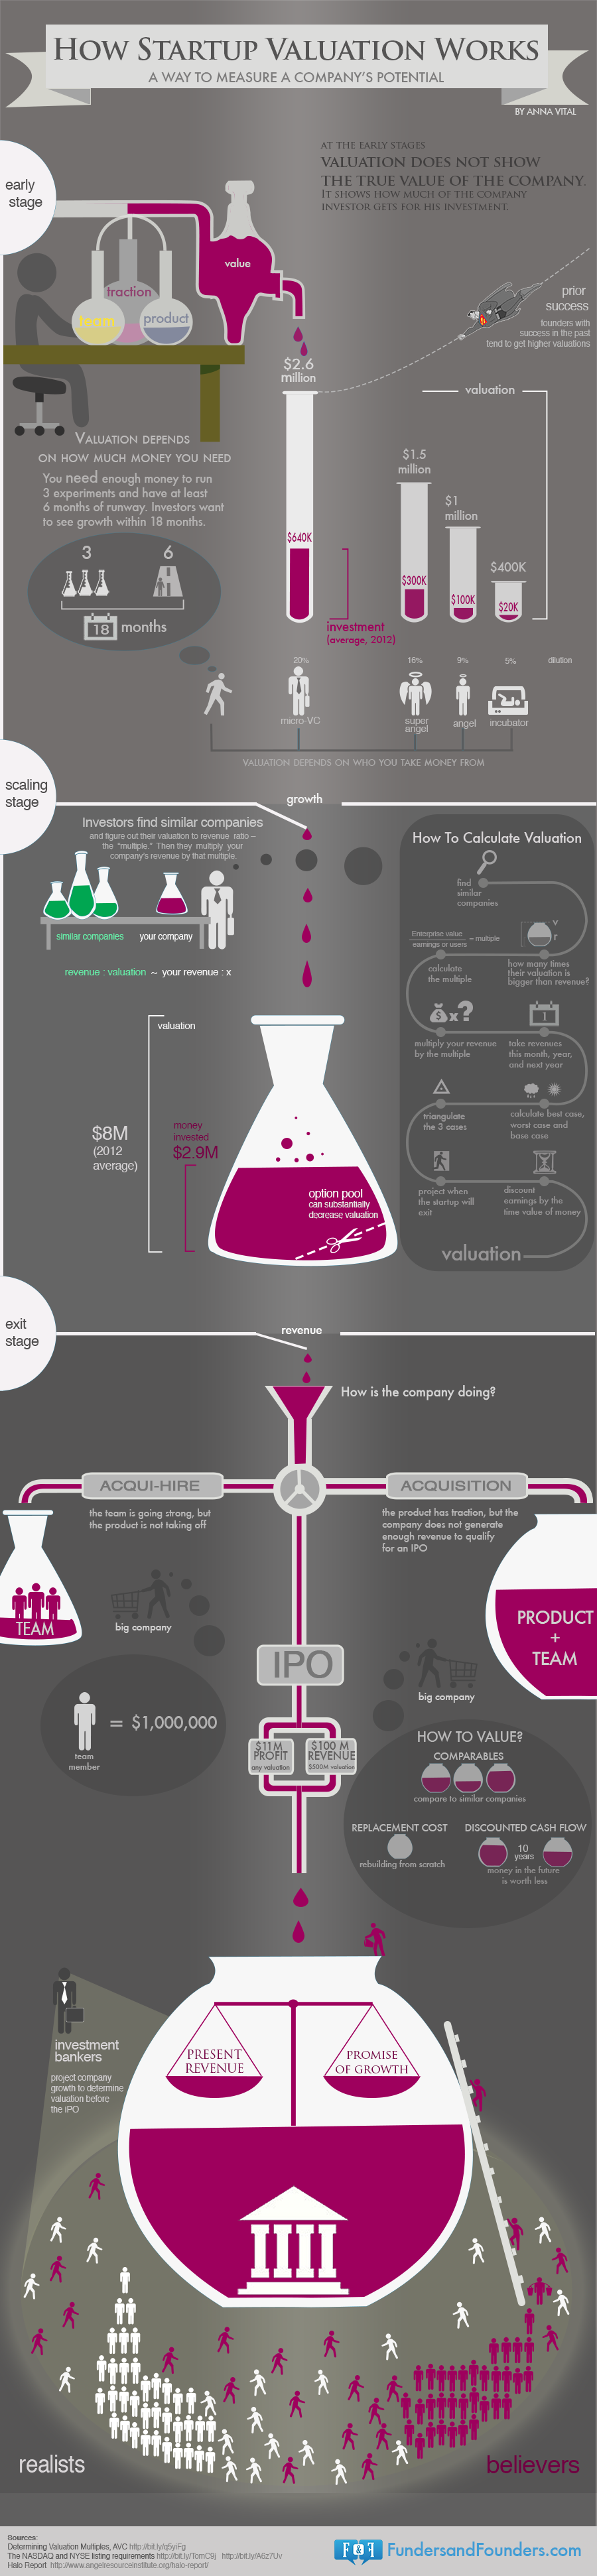 how-startup-valuation-works-infographic